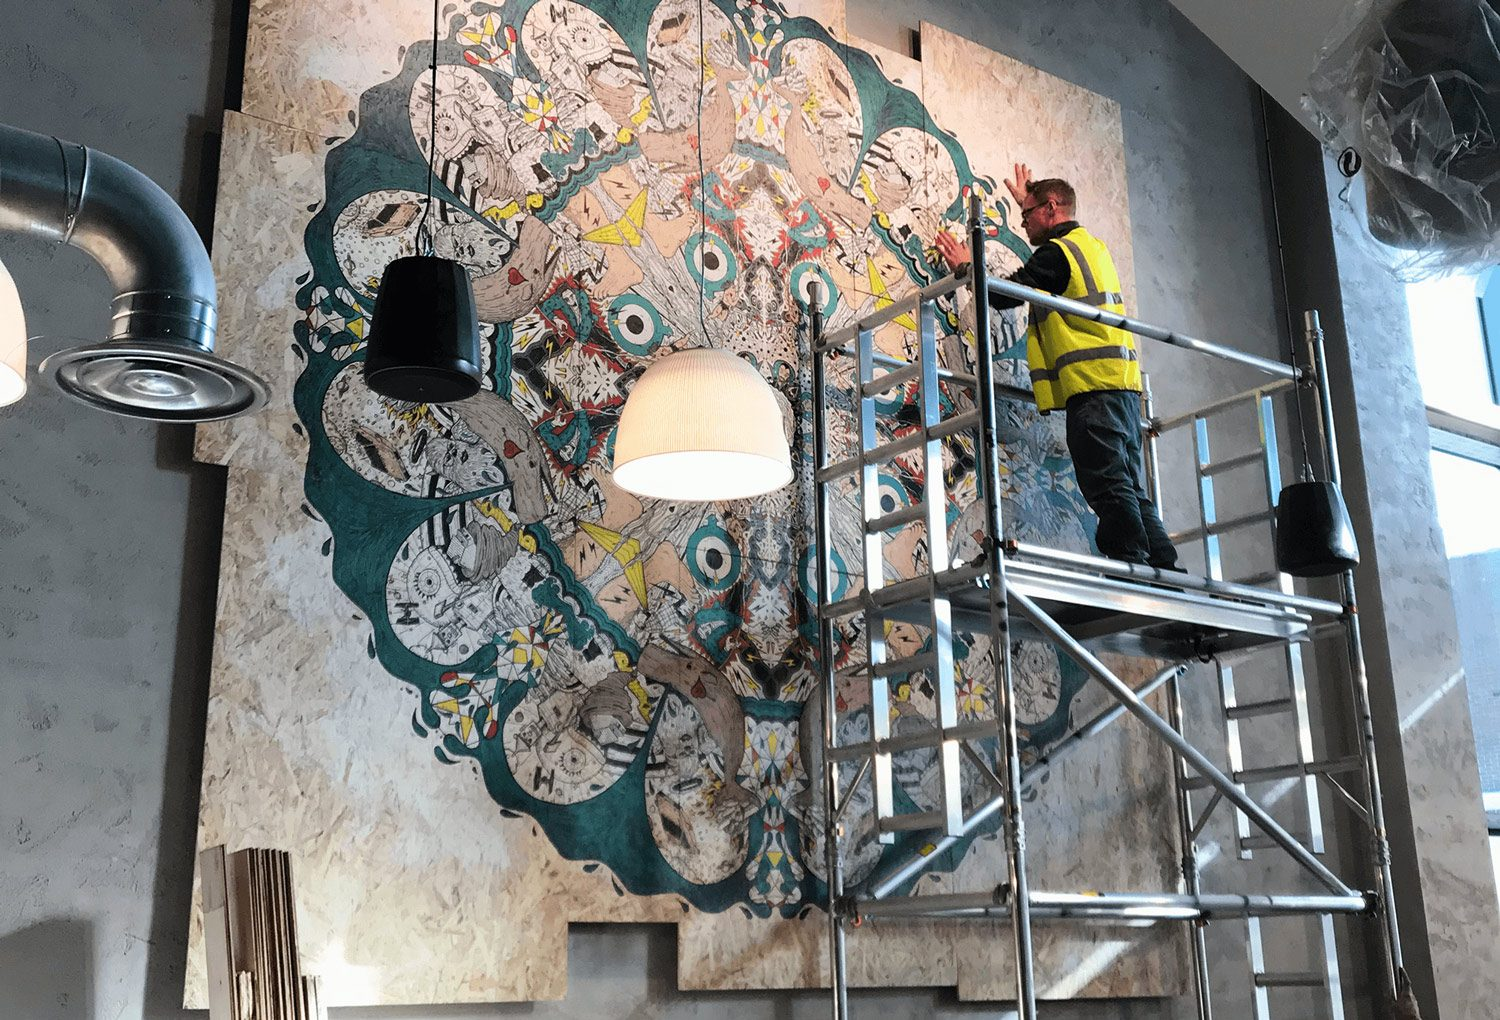 a workman on a tower installing a giant mural